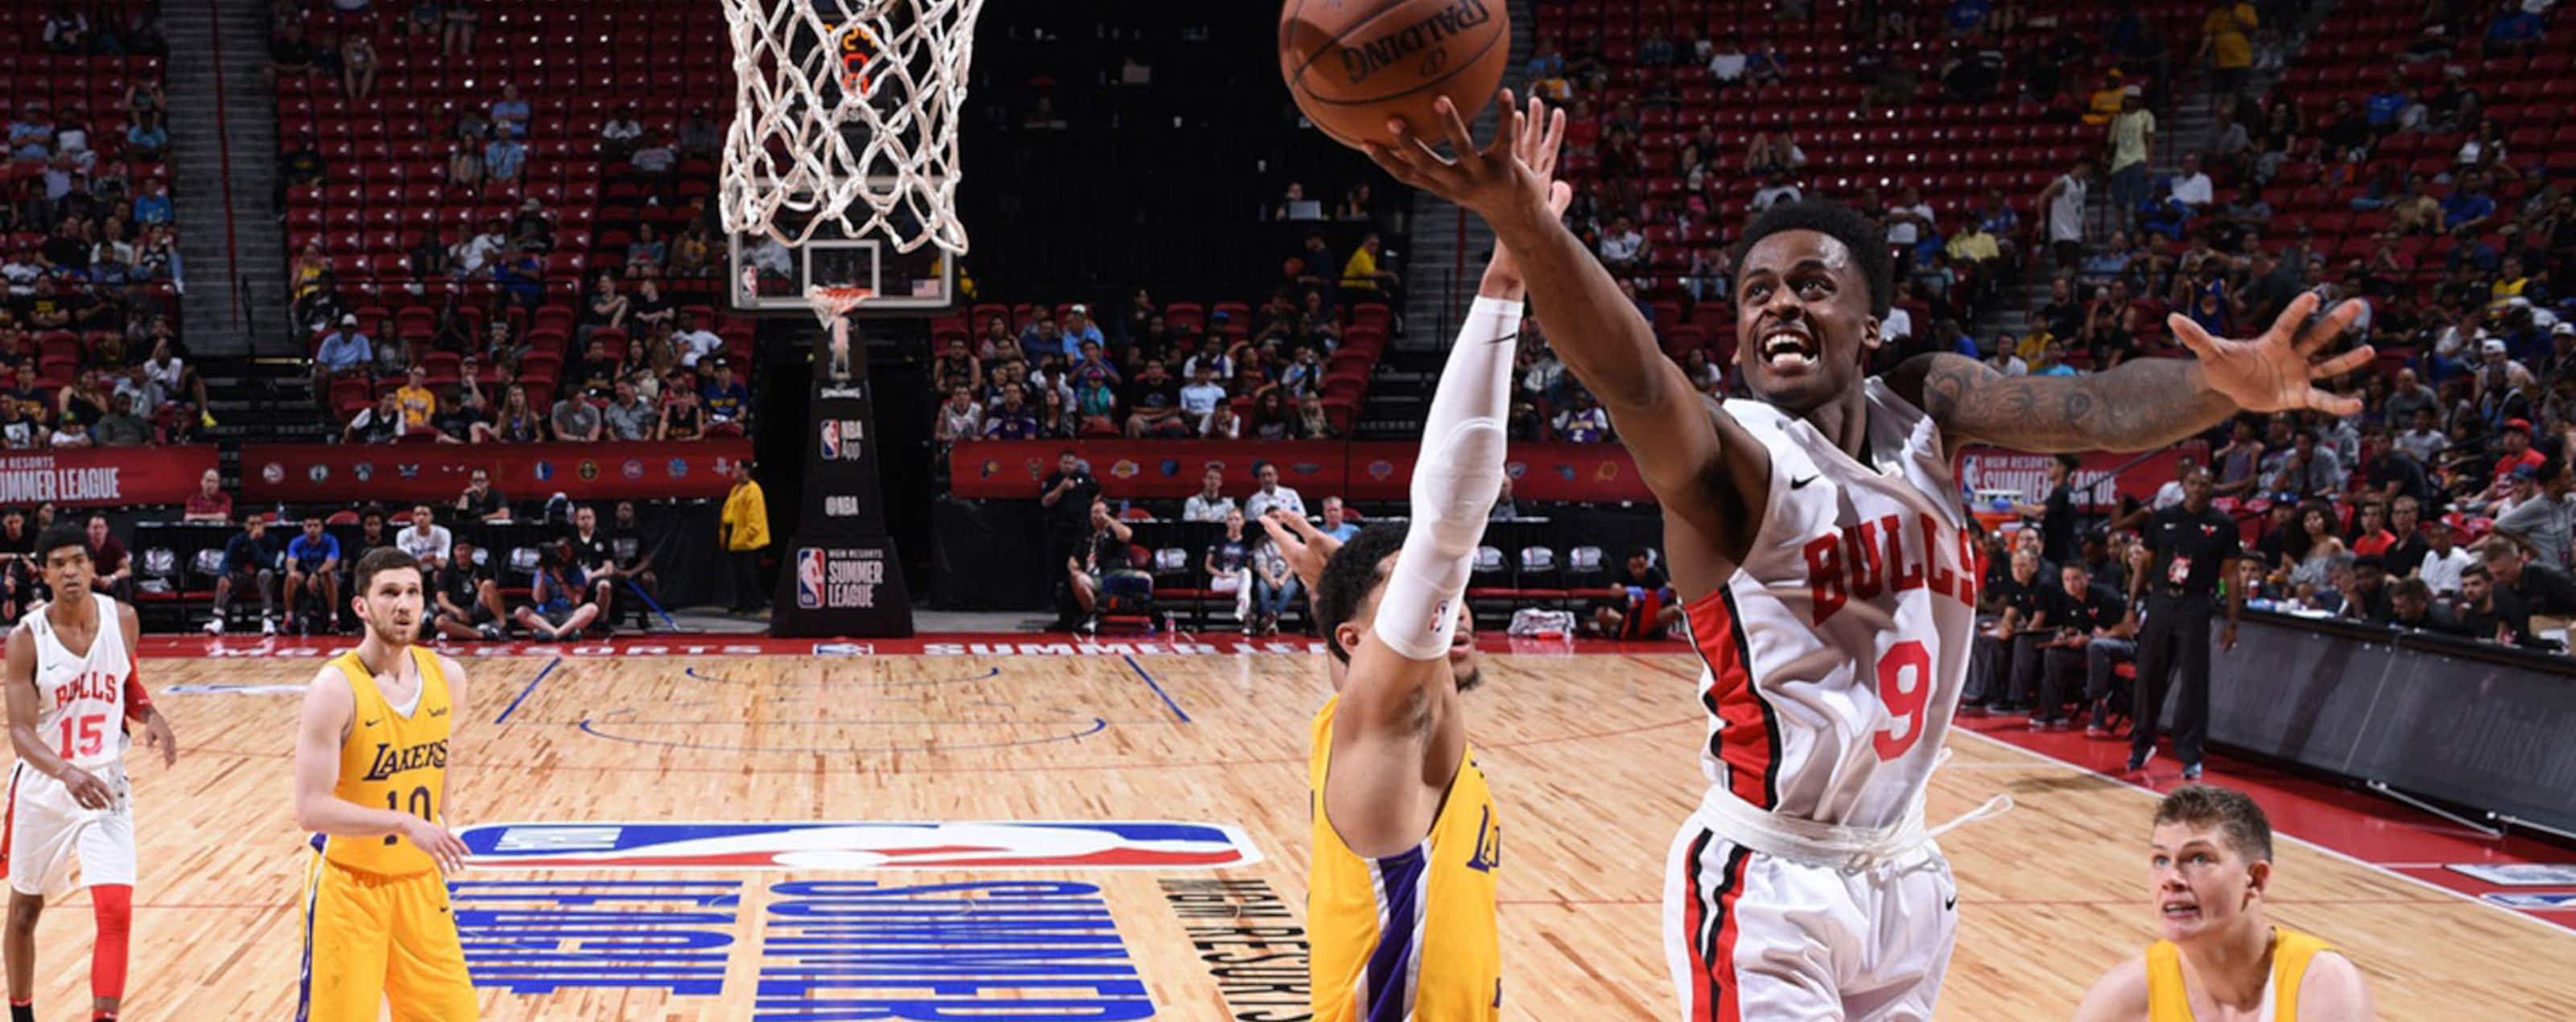 Antonio Blakeney #9 of the Chicago Bulls handles the ball against the Los Angeles Lakers during the 2018 Las Vegas Summer League on July 8, 2018 at the Thomas & Mack Center in Las Vegas, Nevada.